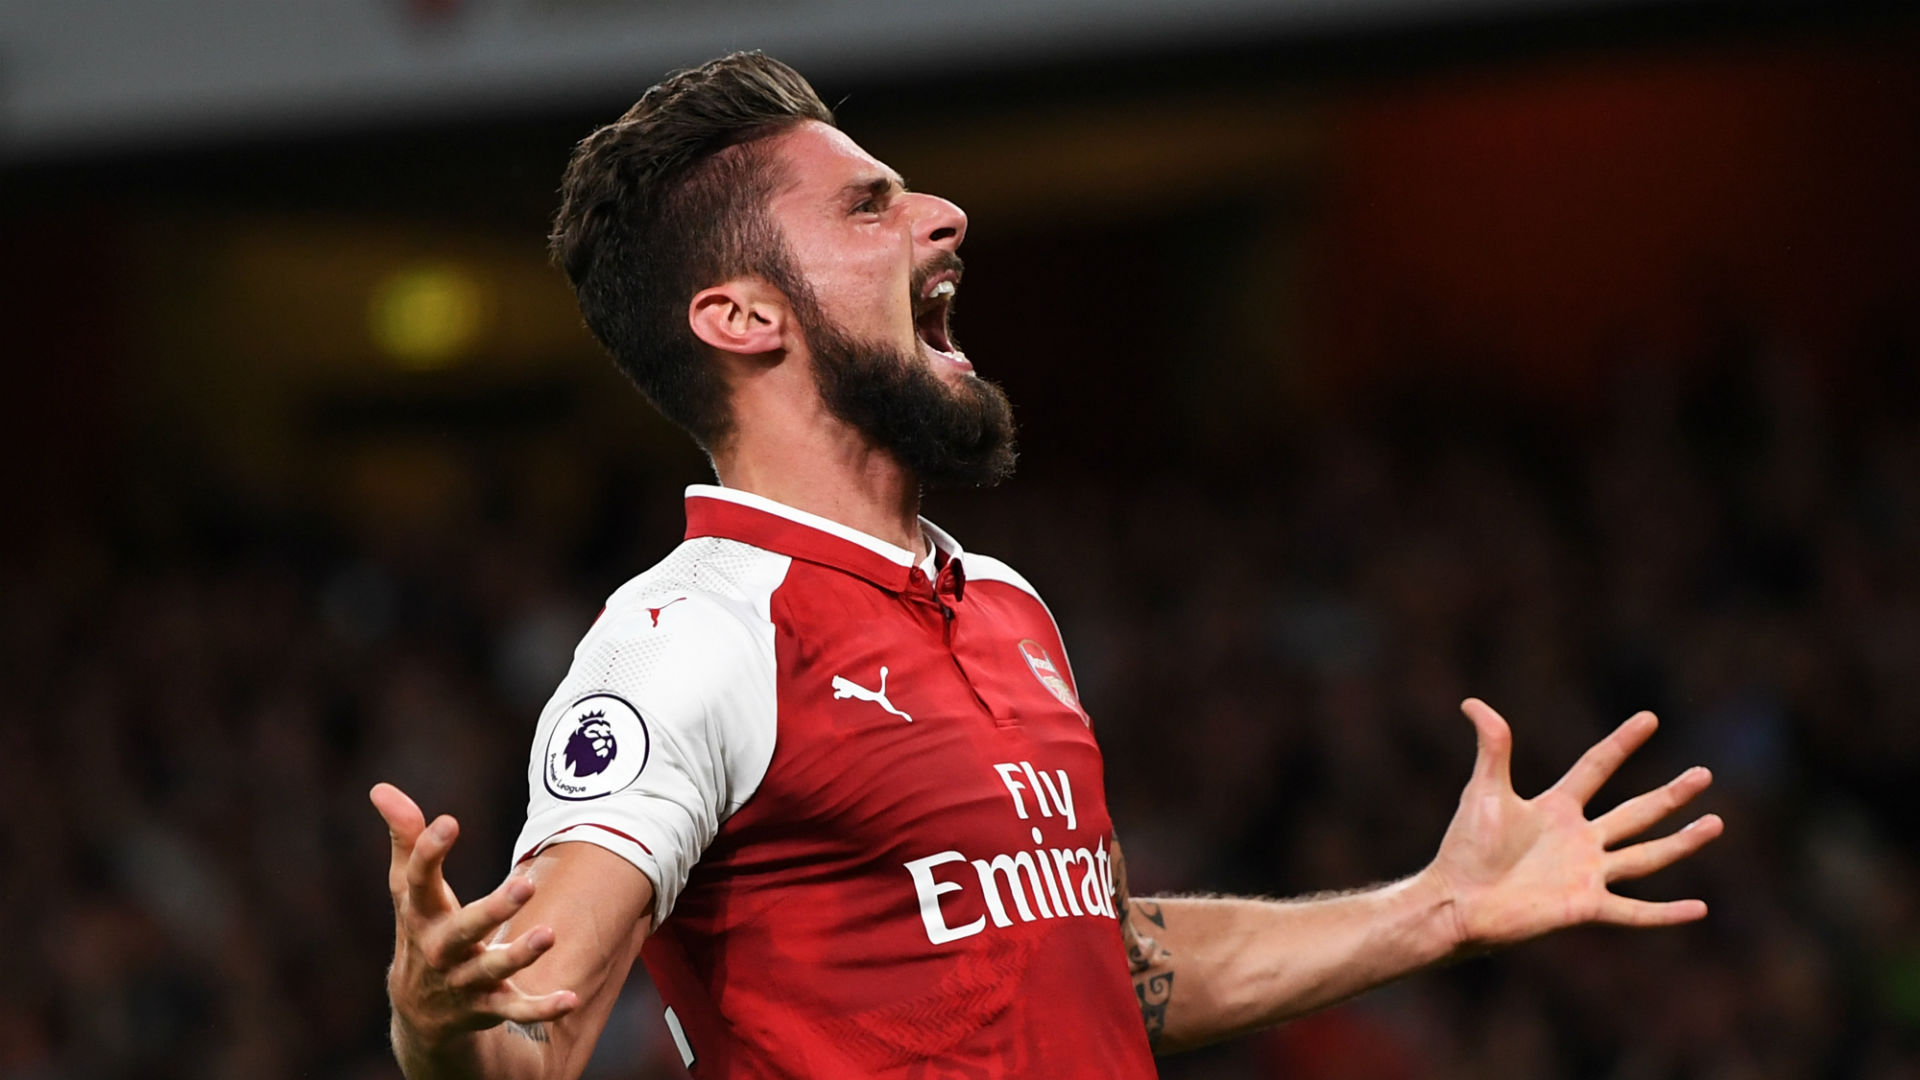 Giroud rejected chance to leave Arsenal, confirms Wenger